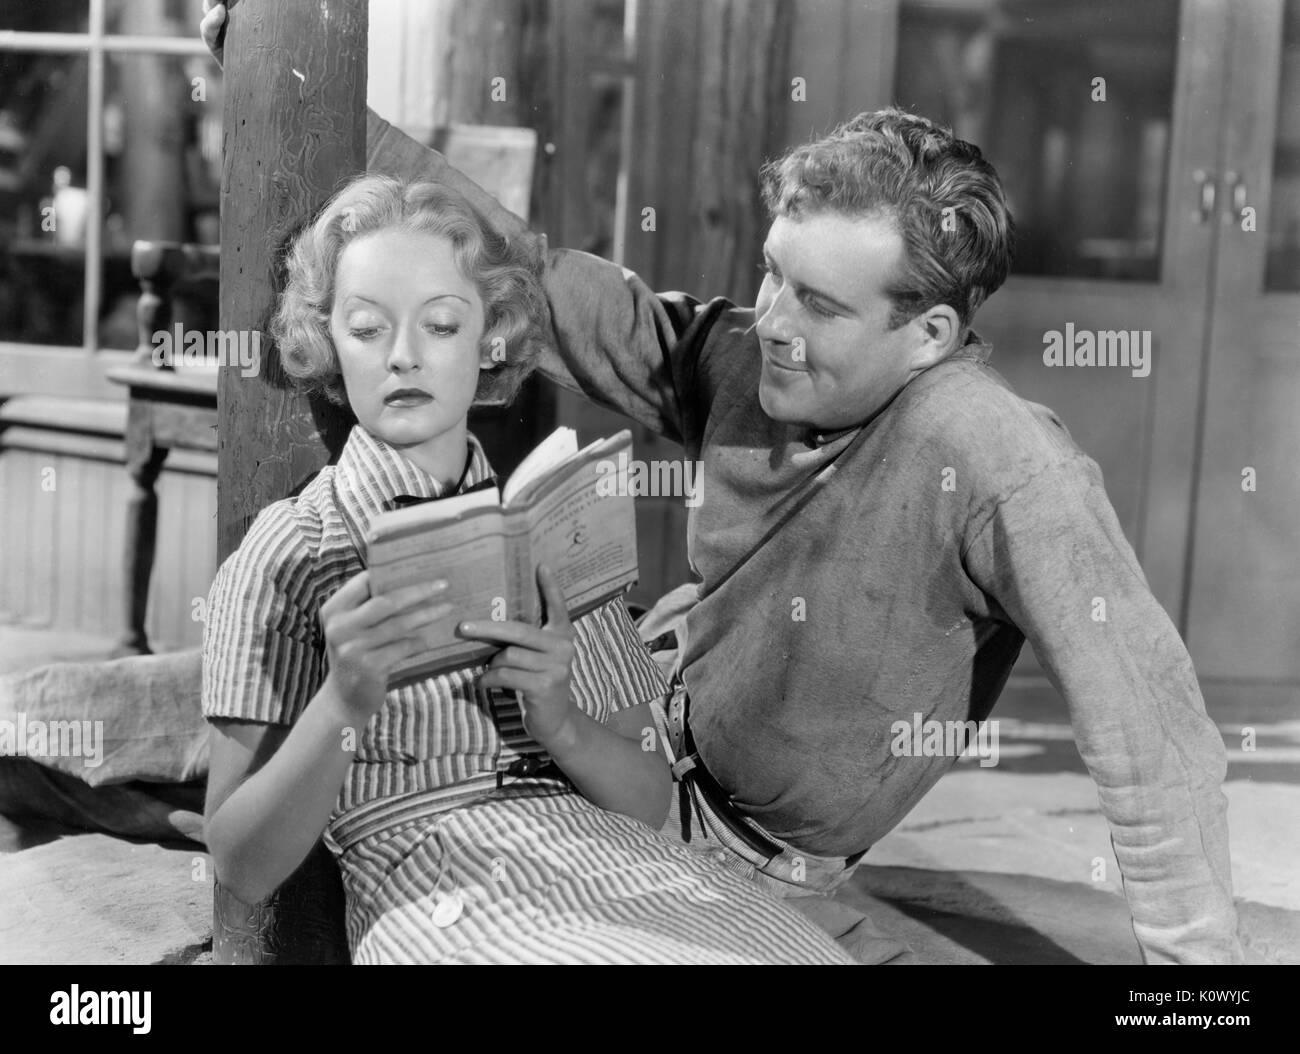 Bette Davis reclining on the floor and reading a book to a man, in a movie still, 1949. Photo credit Smith Collection/Gado/Getty Stock Photo